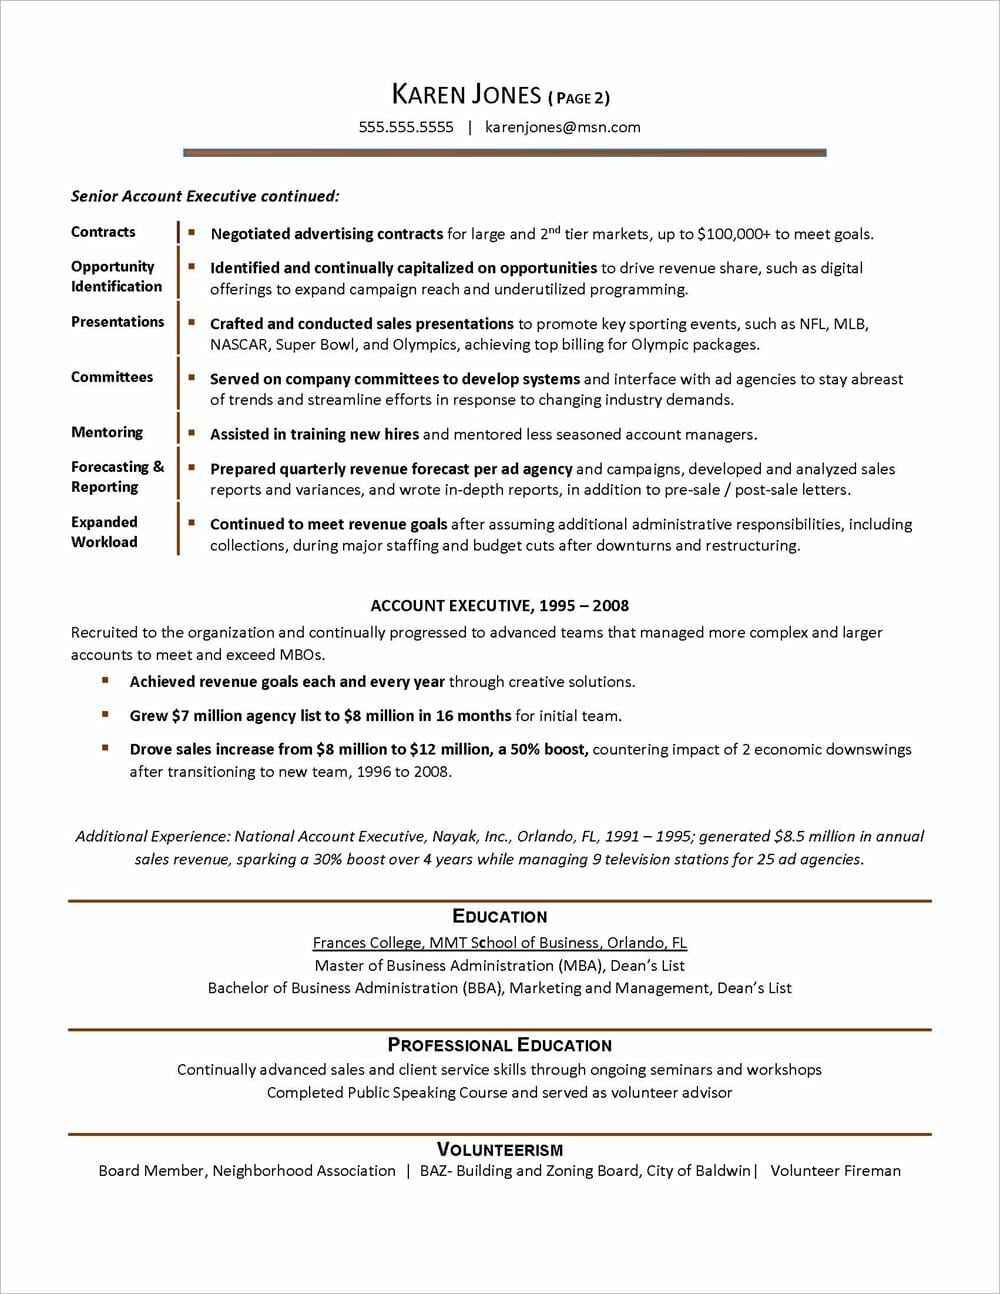 Advertising Agency Resume page 2